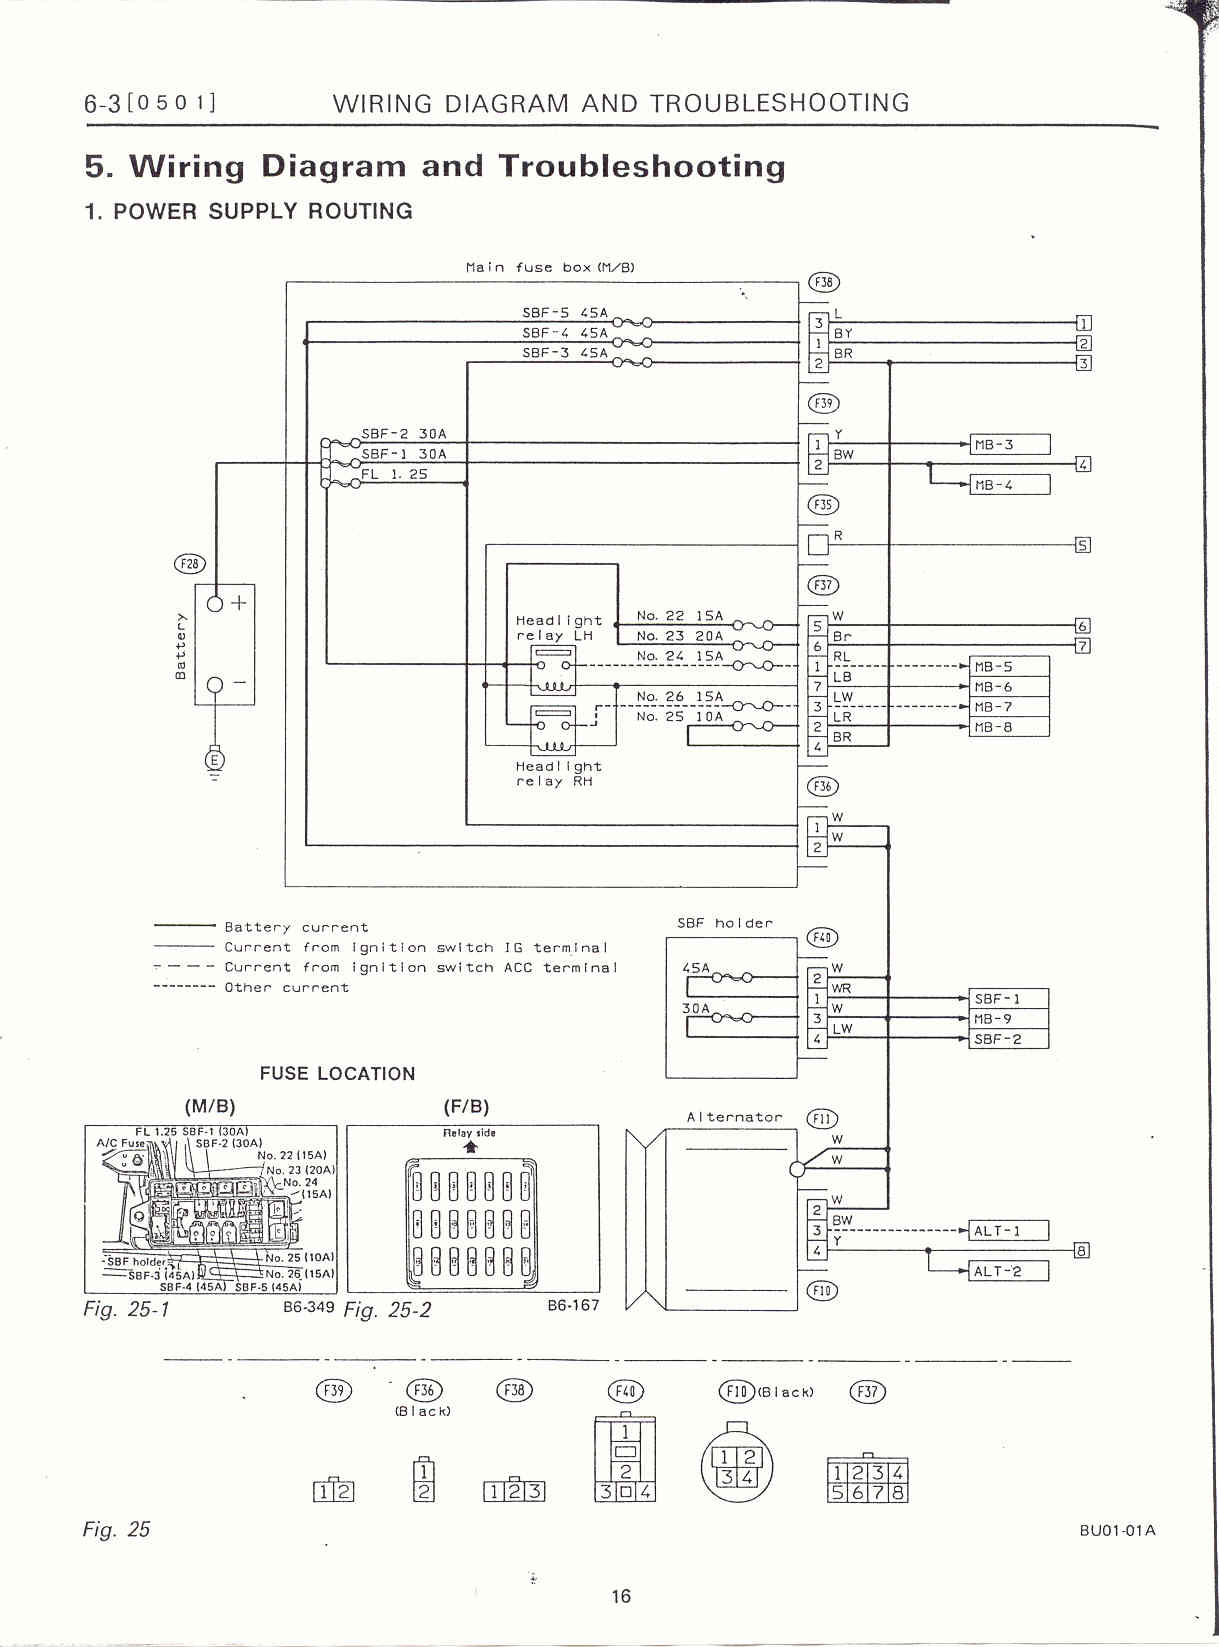 2004 Subaru Impreza Wrx Wiring Diagram also 2017 Subaru Brat further 2000 Subaru Outback Wiring Diagram in addition Subaru Wiring Diagram 2002 further Mazd13cn. on subaru outback radio wiring